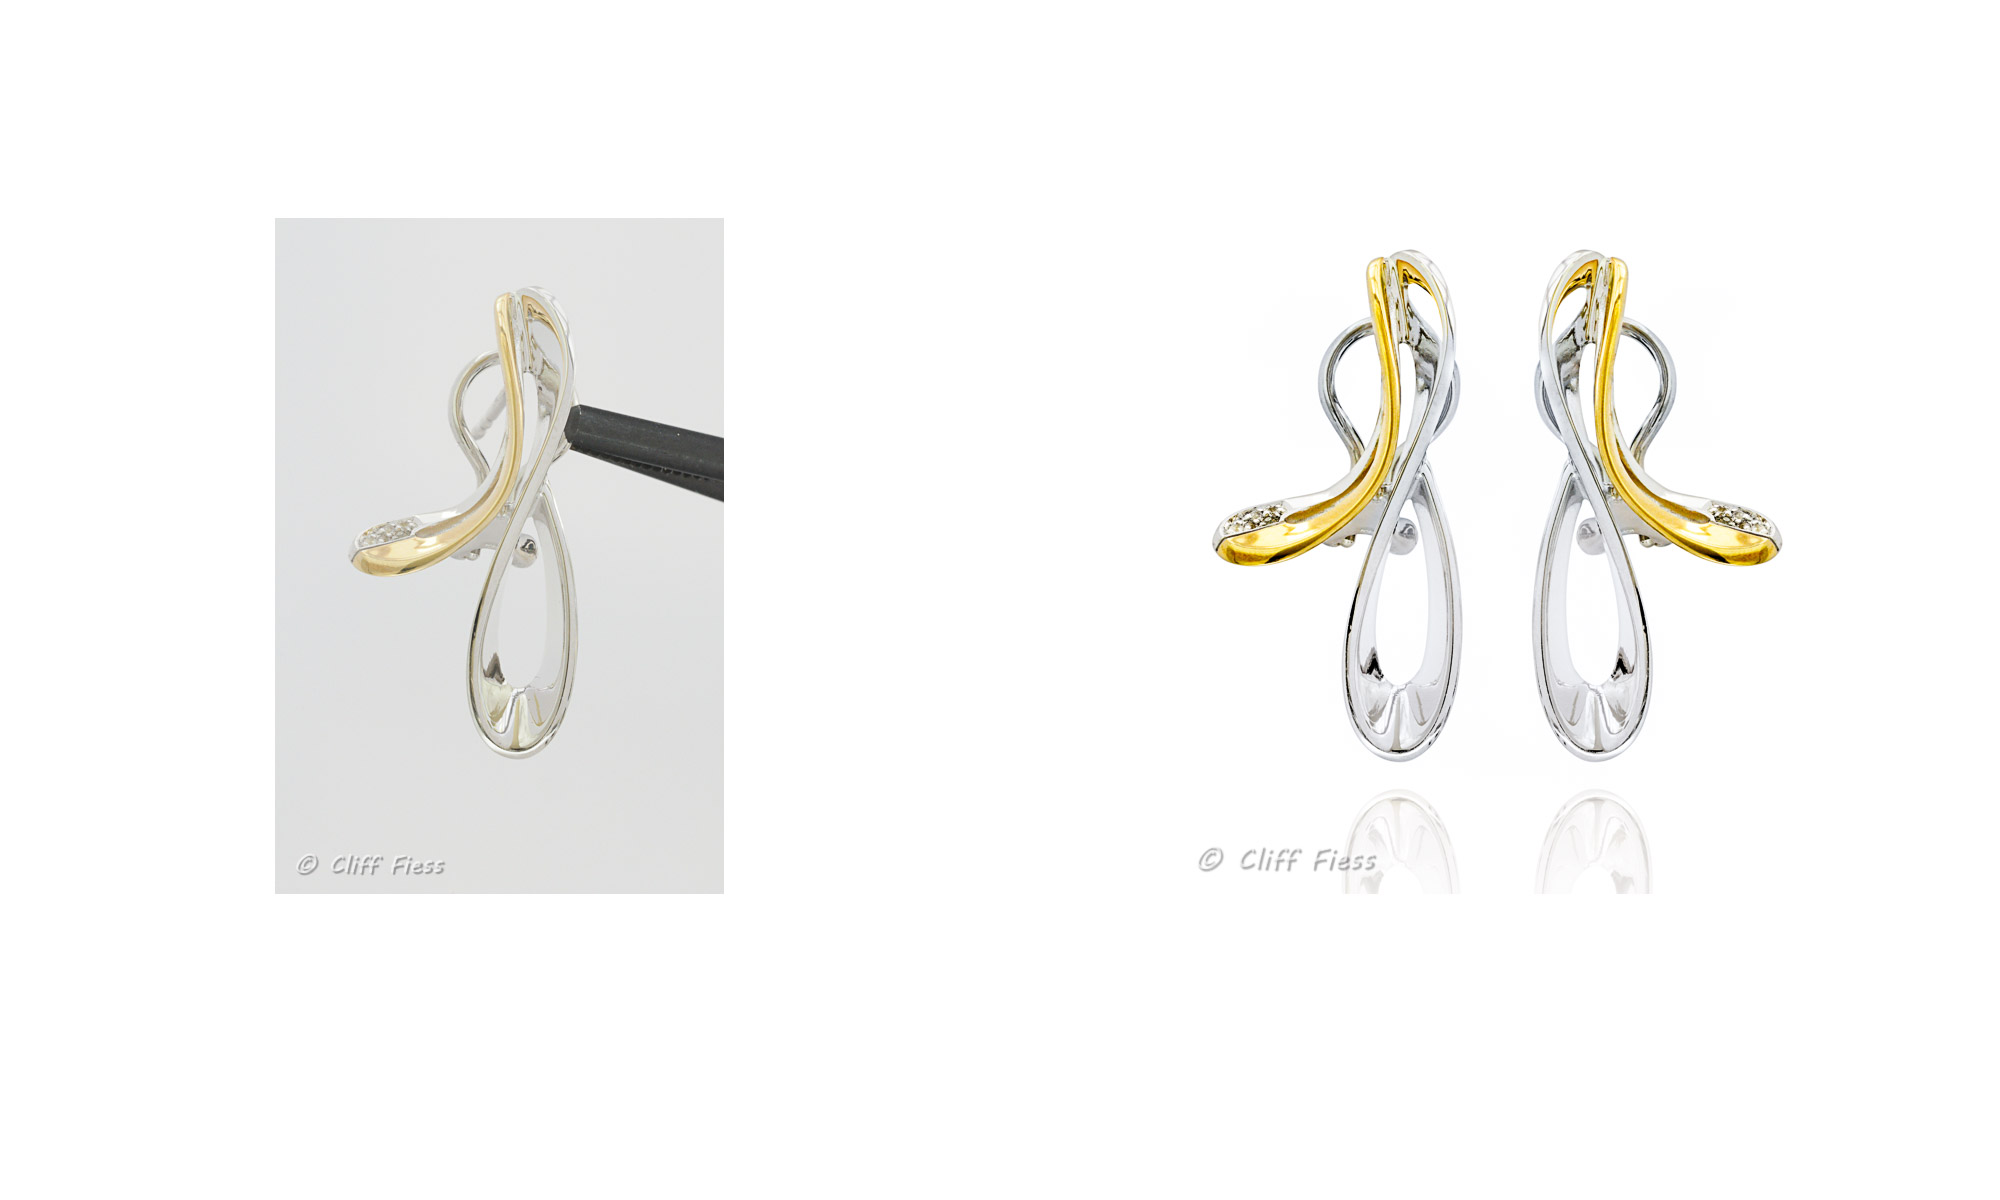 cfp-20120128-sterling-silver-and-14-karat-yellow-gold-earrings-featuring-a-post-and-omega-clip-back-0003b.jpg